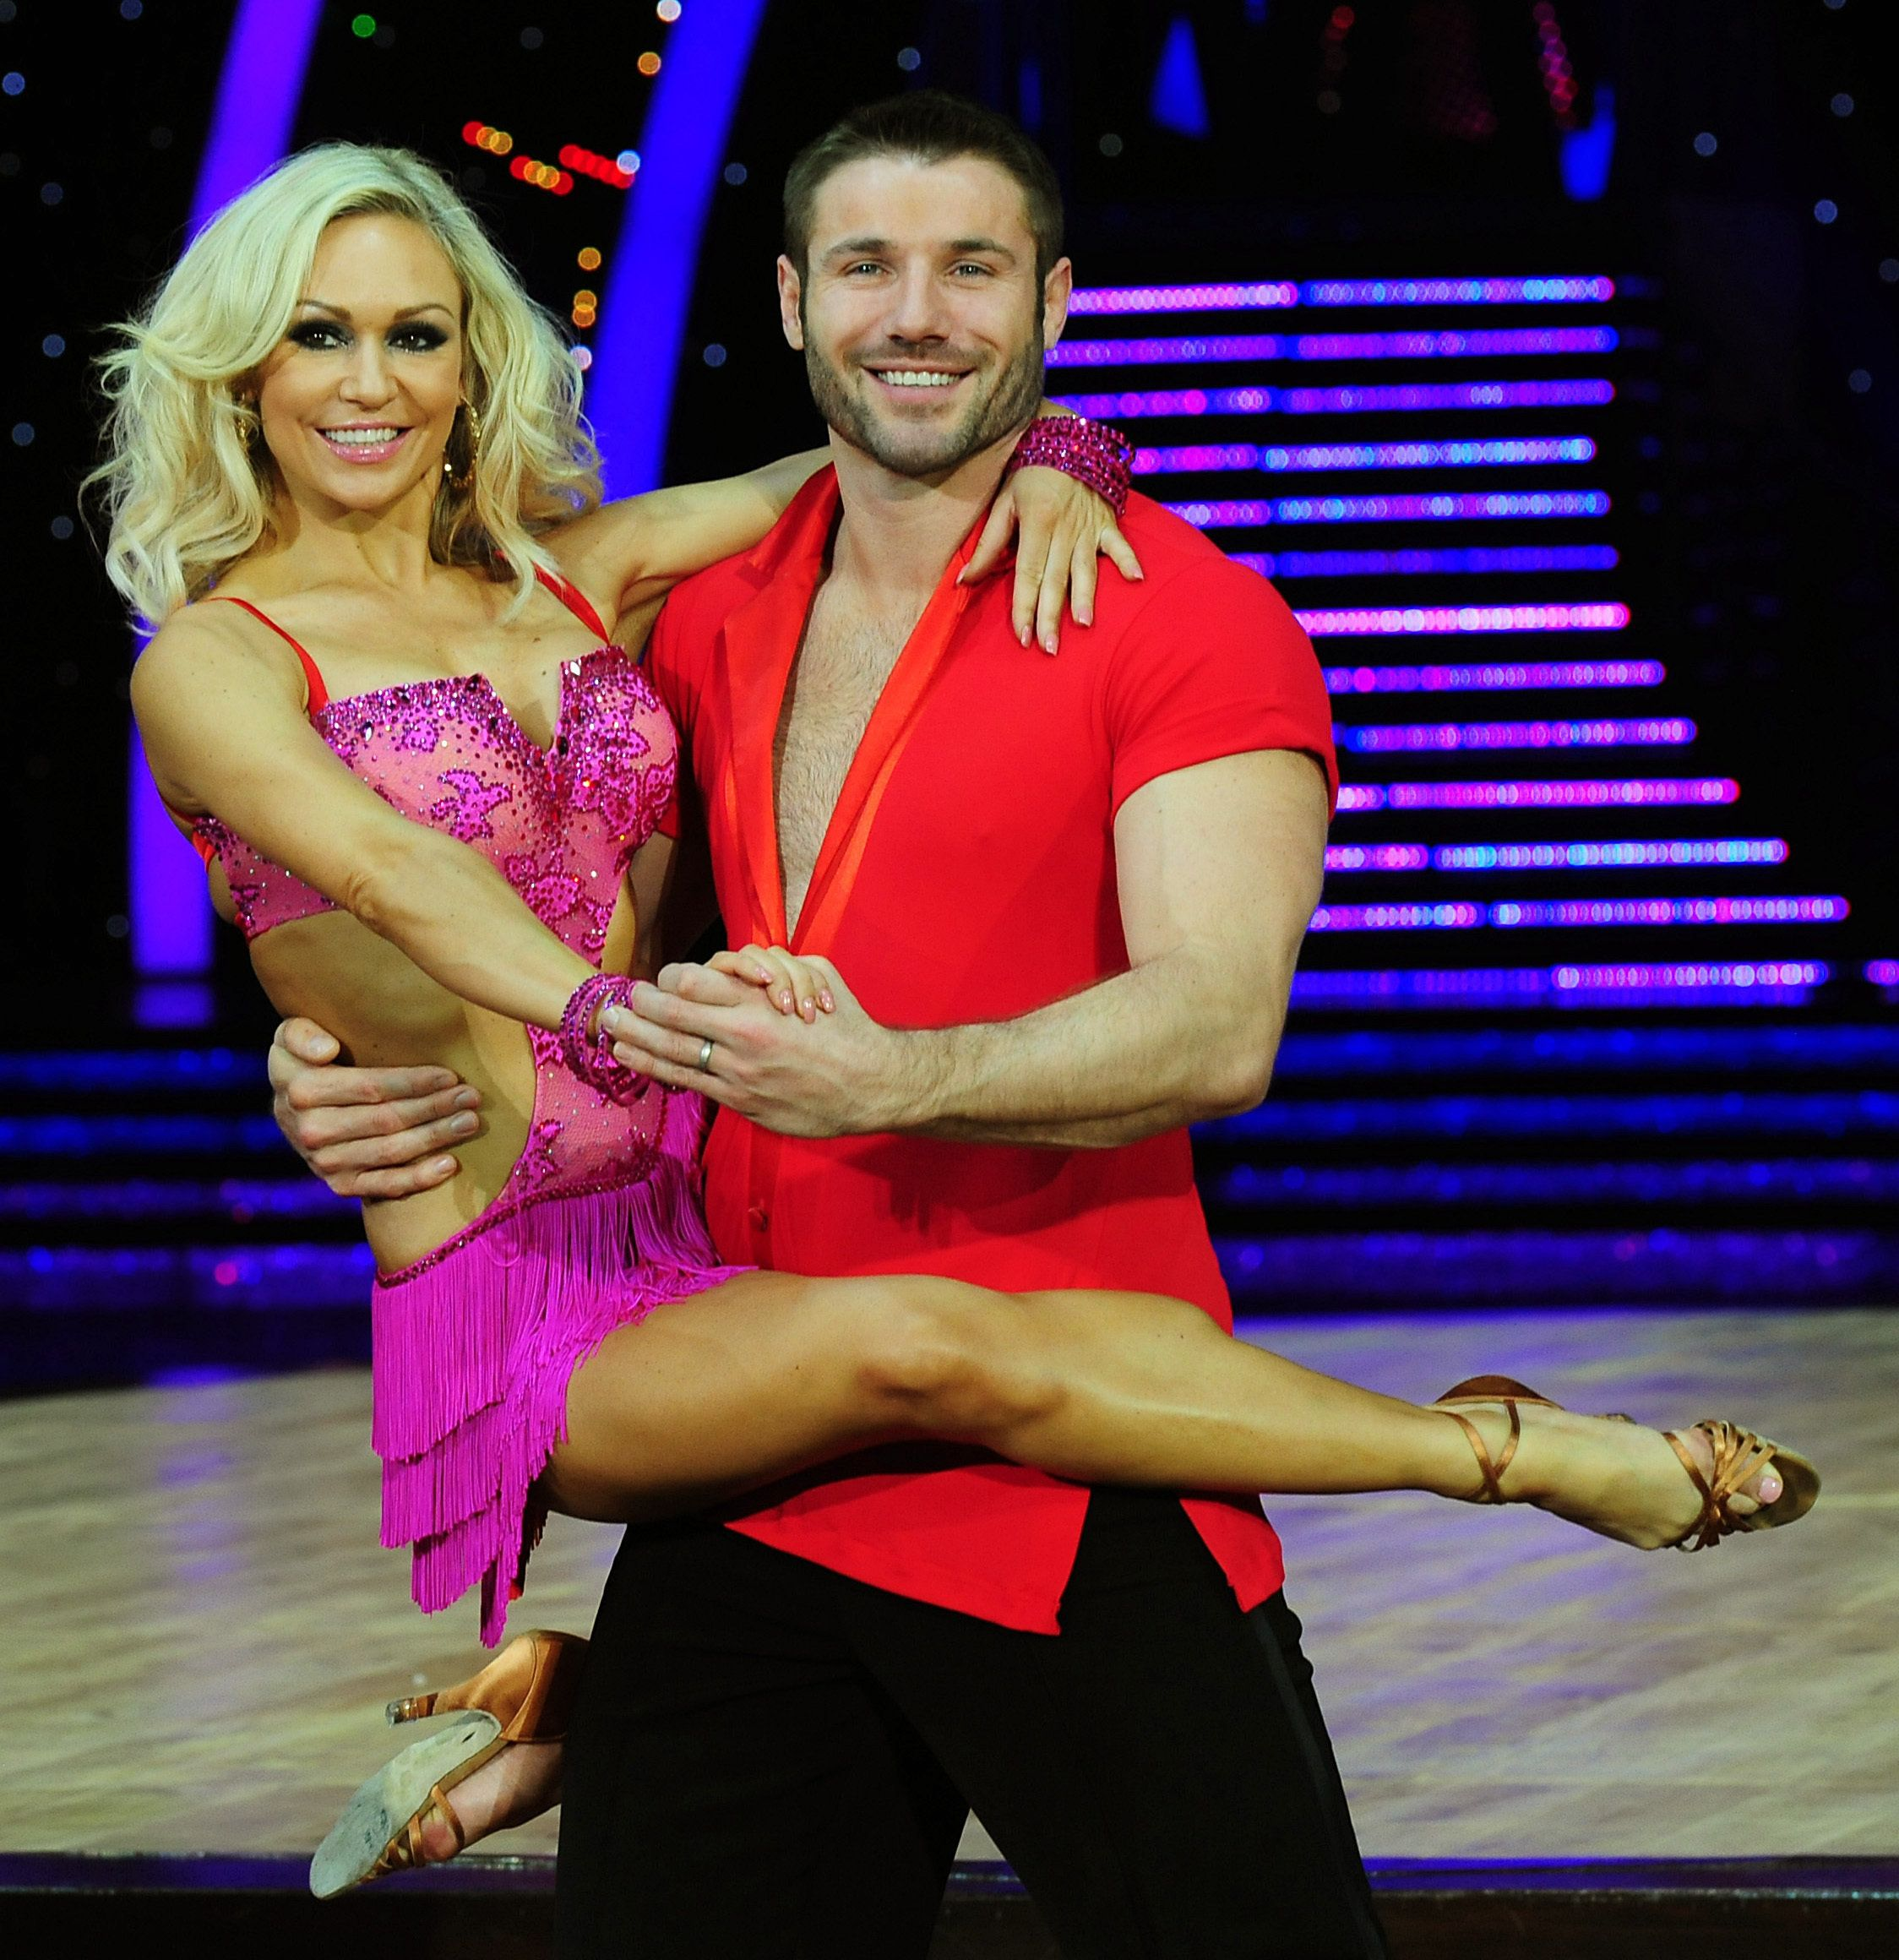 Strictly's Kristina Rihanoff Gives Birth To Baby Girl With Boyfriend Ben